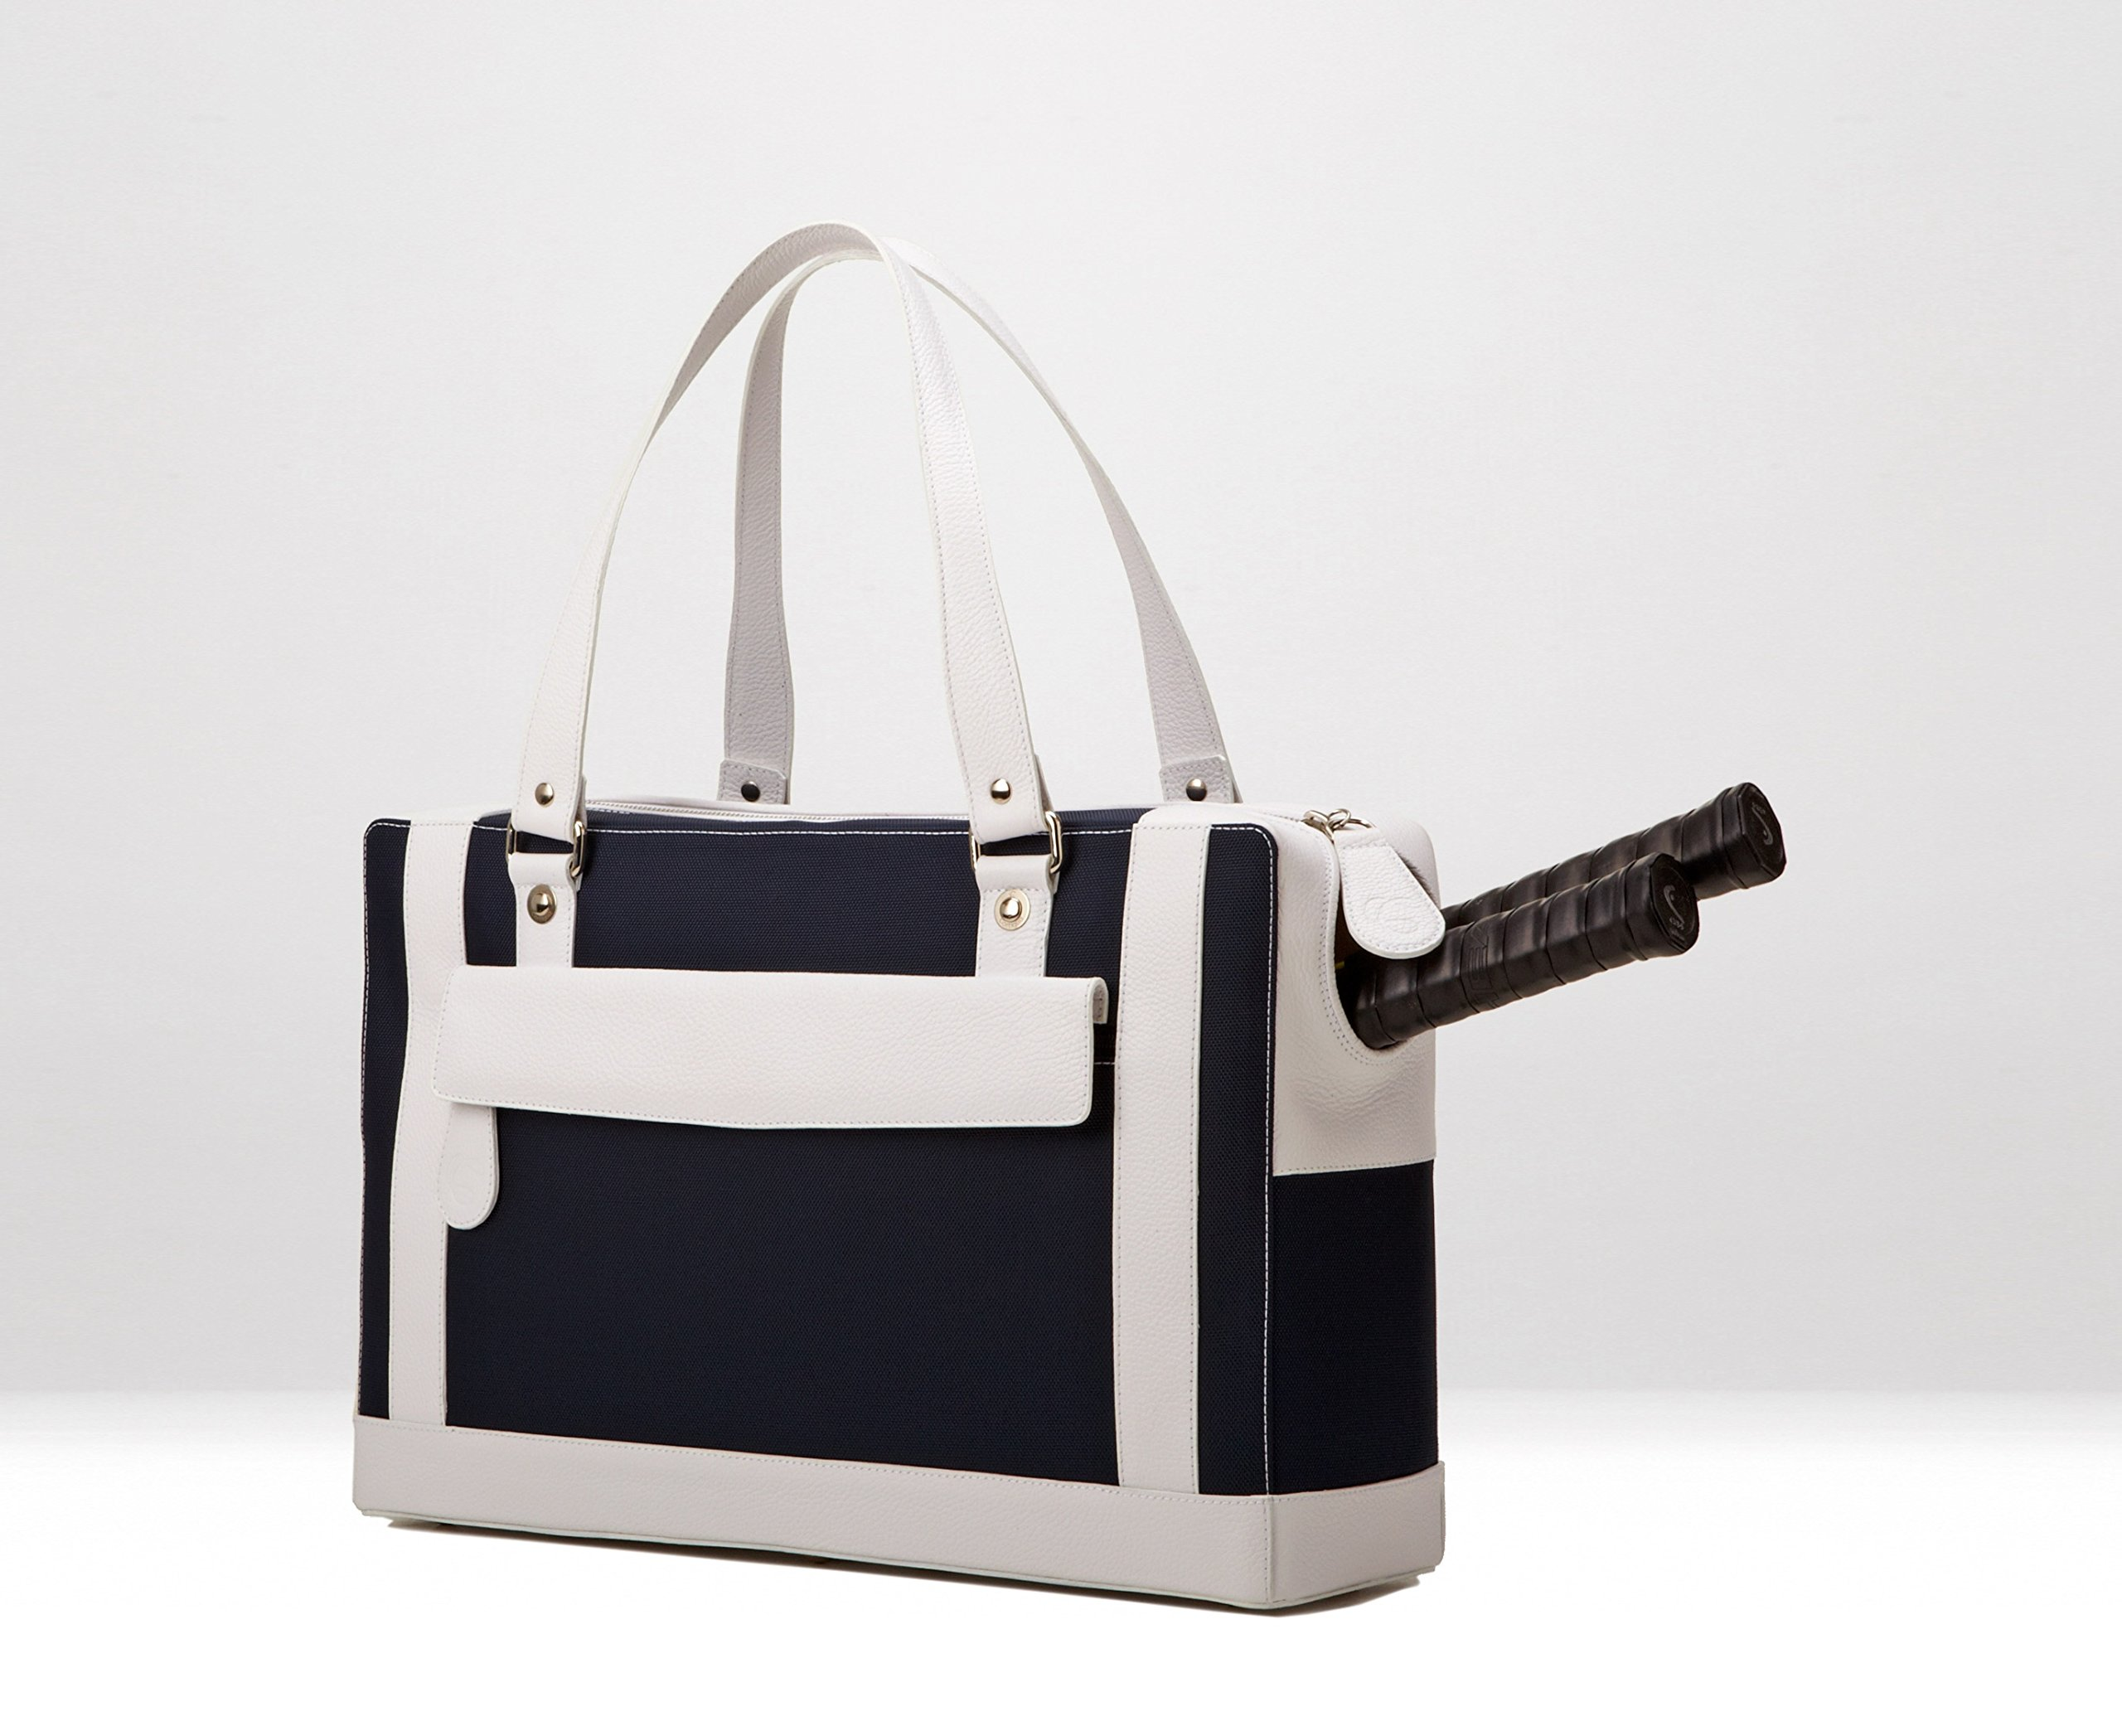 Cortiglia Marina Blue Navy/white Tennis Bag